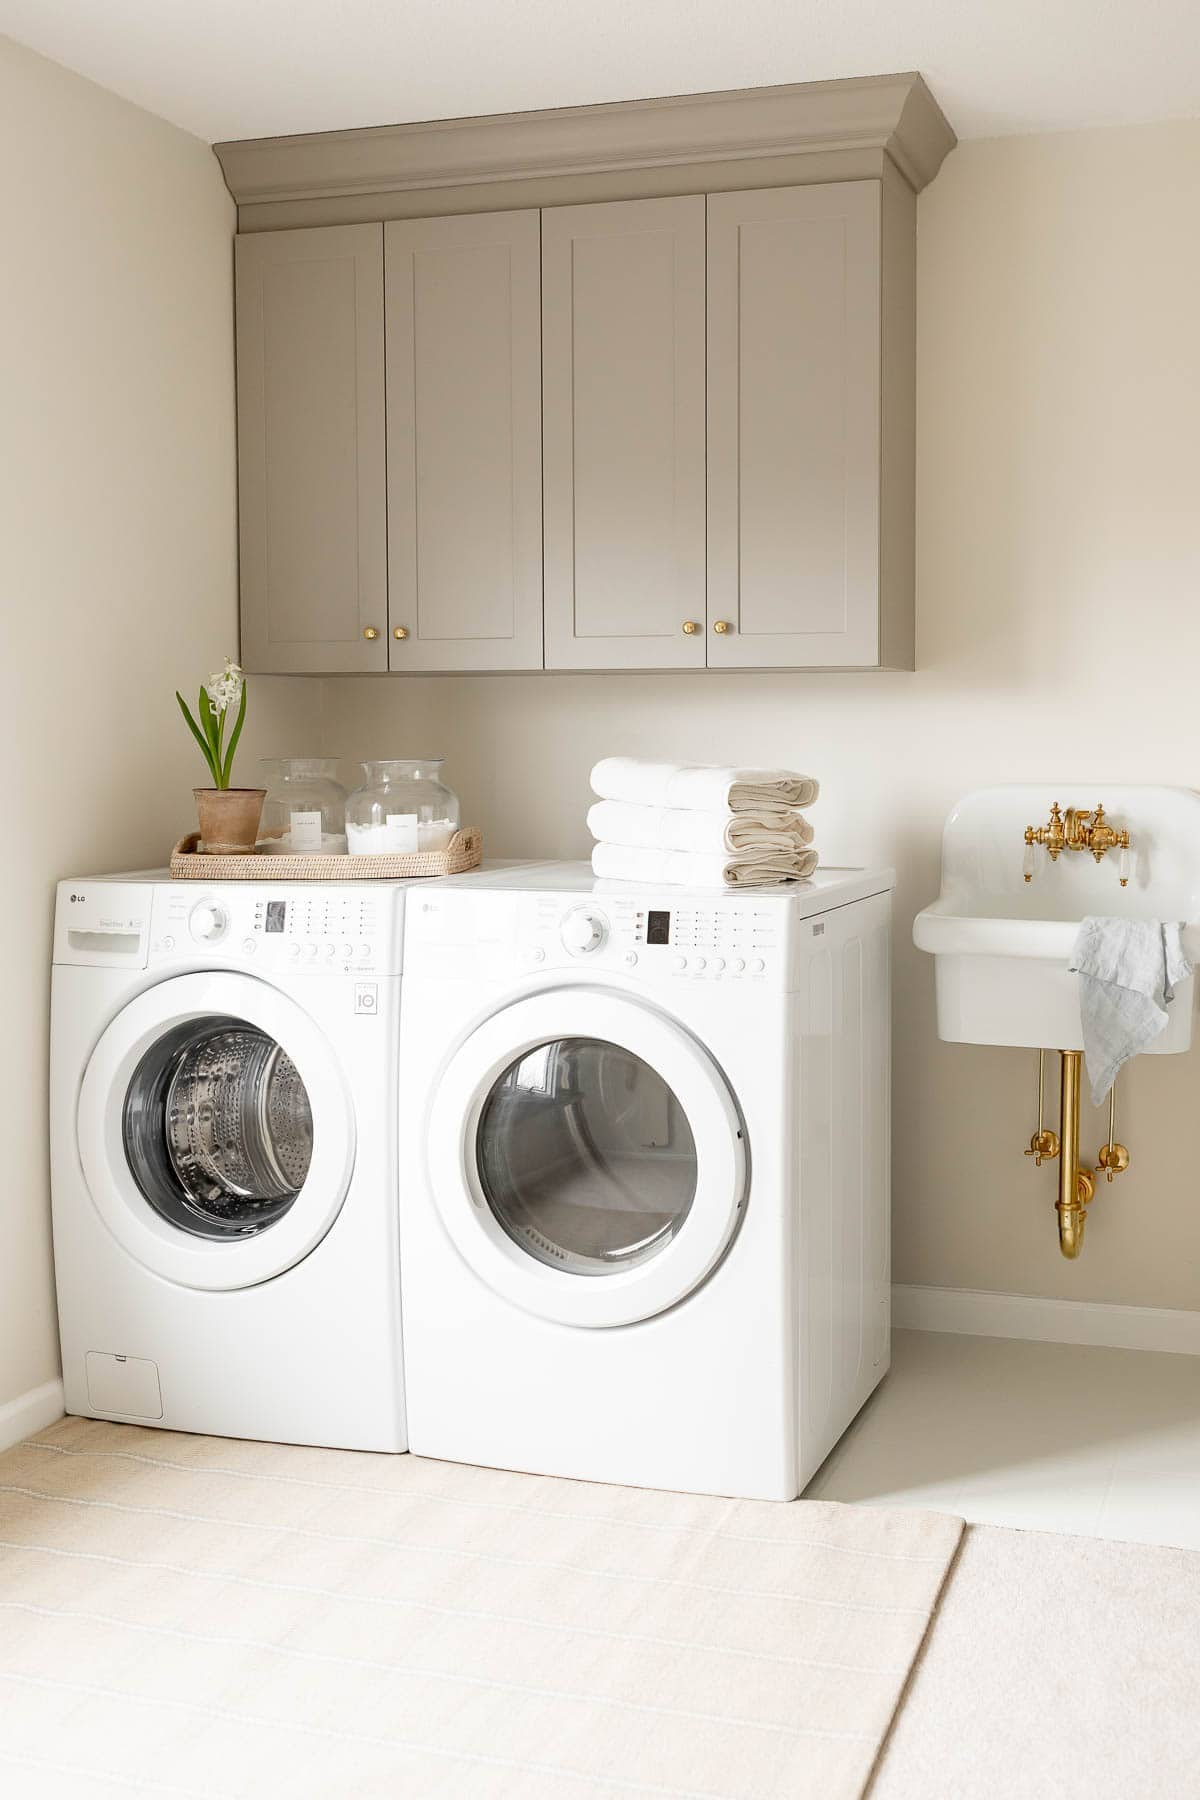 washer and dryer with laundry room wall cabinets above